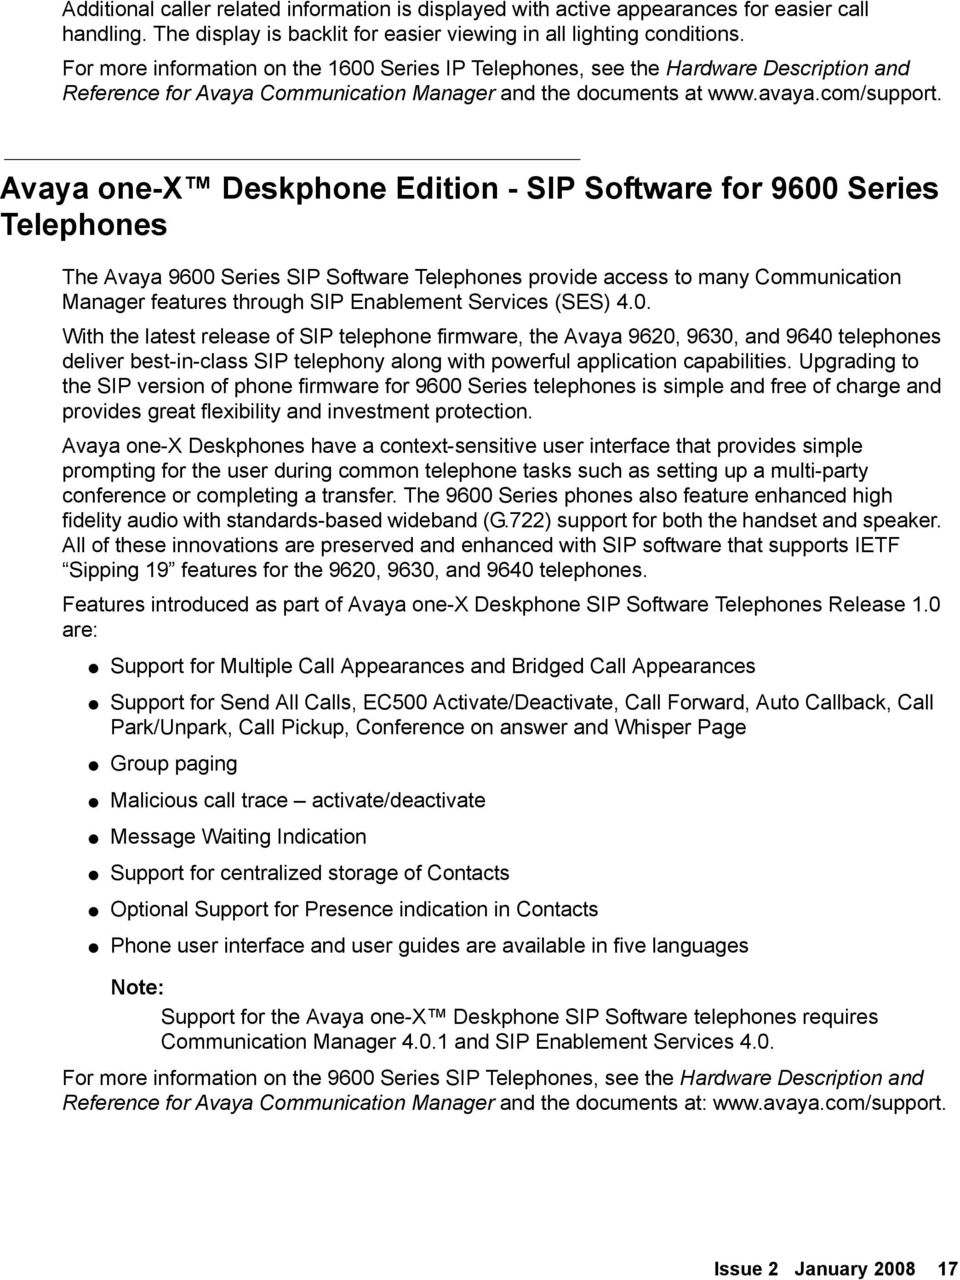 Avaya one-x Deskphone Edition - SIP Software for 9600 Series Telephones The Avaya 9600 Series SIP Software Telephones provide access to many Communication Manager features through SIP Enablement